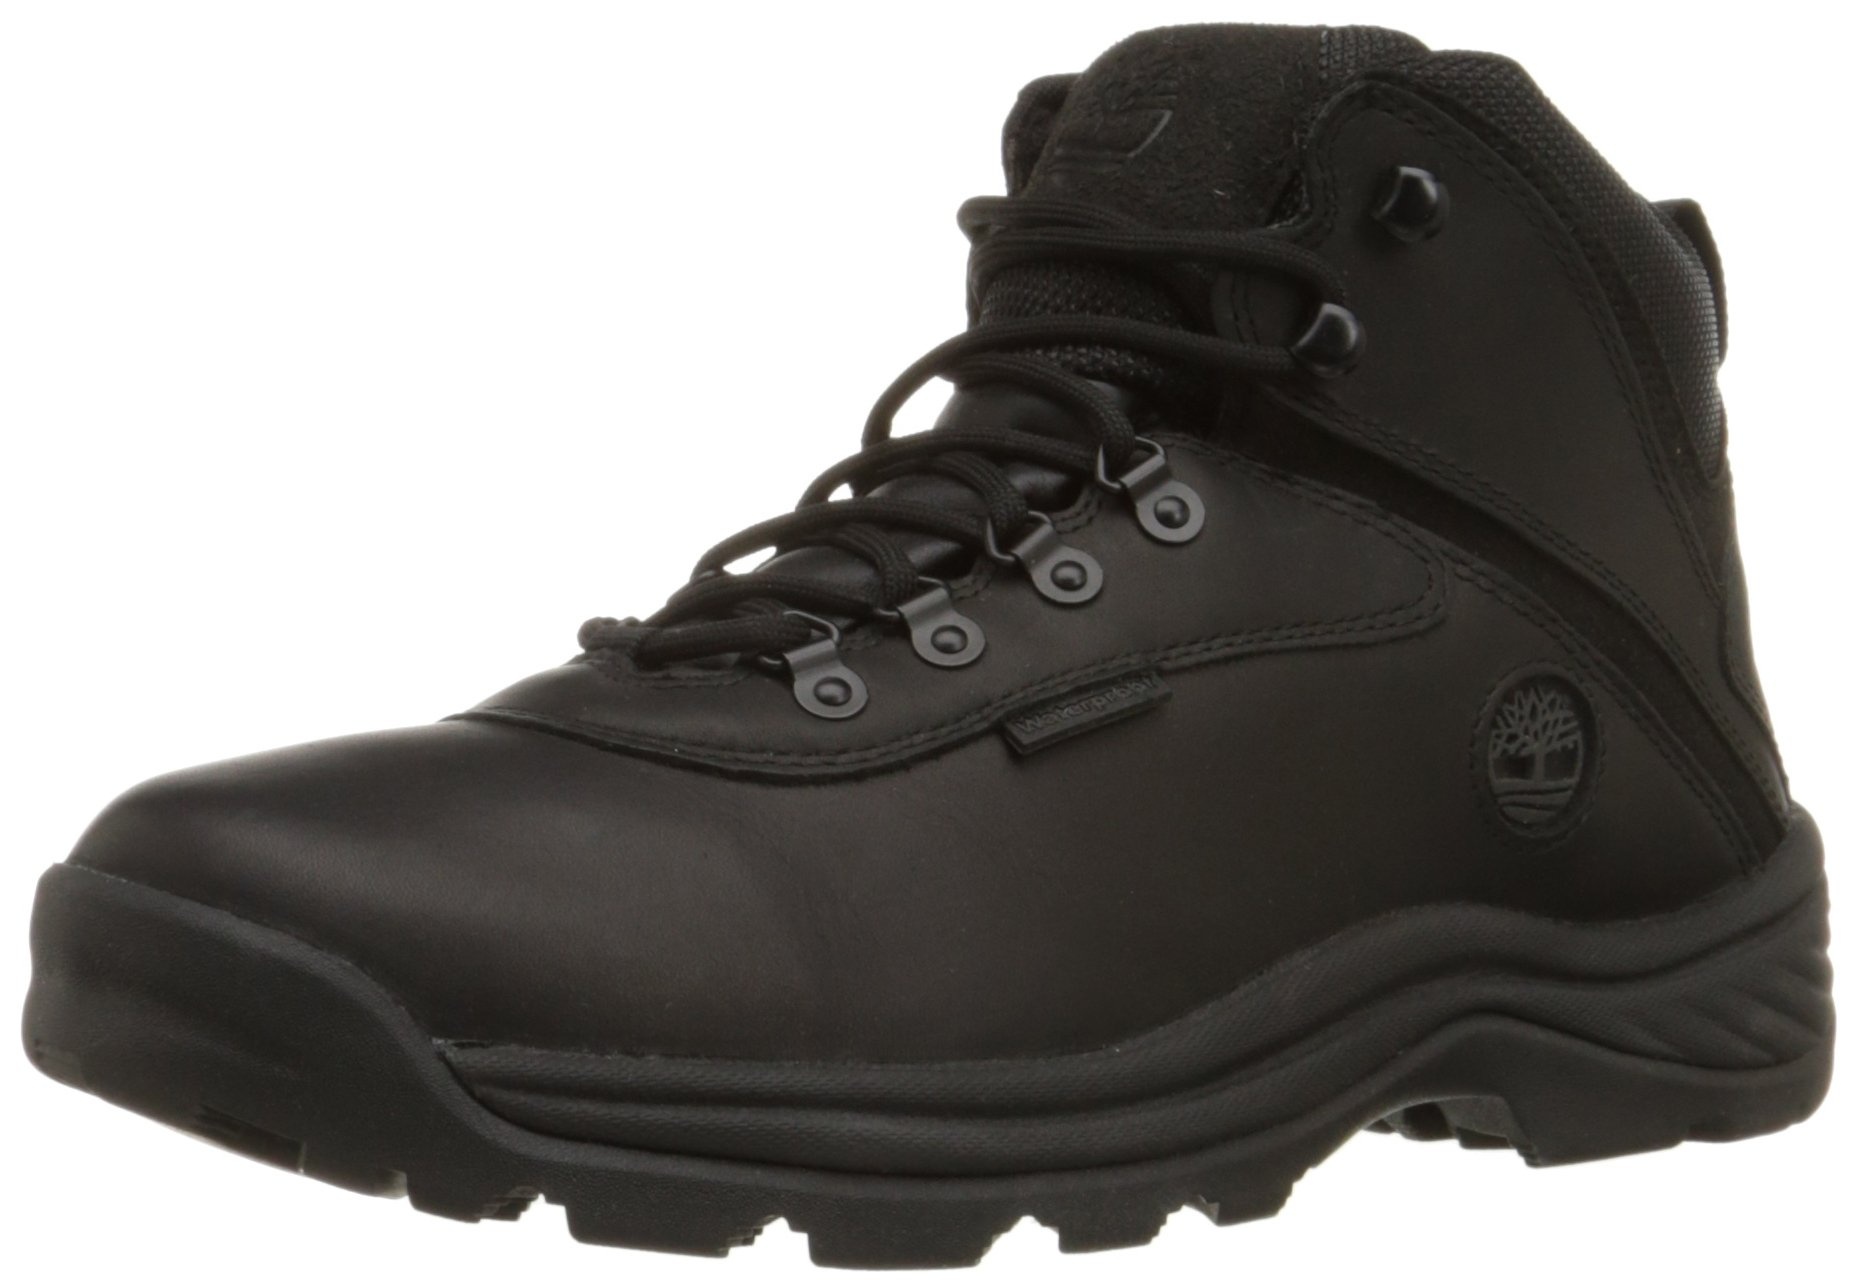 Timberland Men's White Ledge Mid Waterproof Ankle Boot,Black,10 W US by Timberland